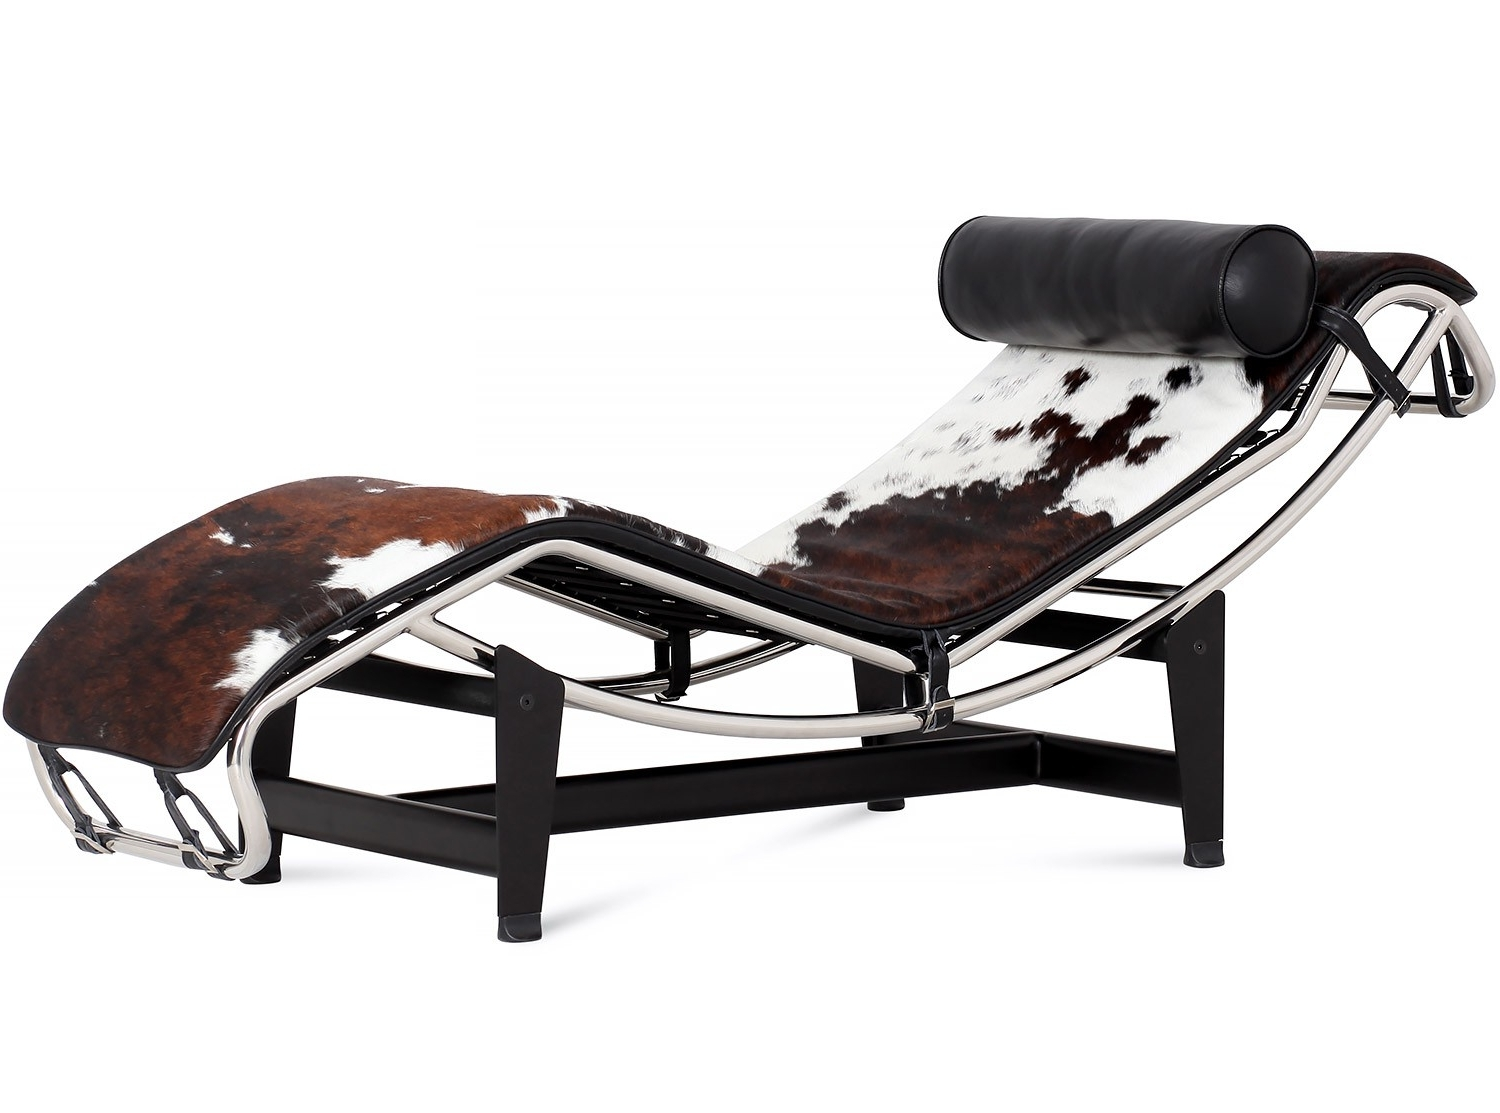 Le Corbusier Lc4 Chaise Longue Cowhide (Platinum Replica) With Regard To Most Recently Released Le Corbusier Chaises (View 10 of 15)